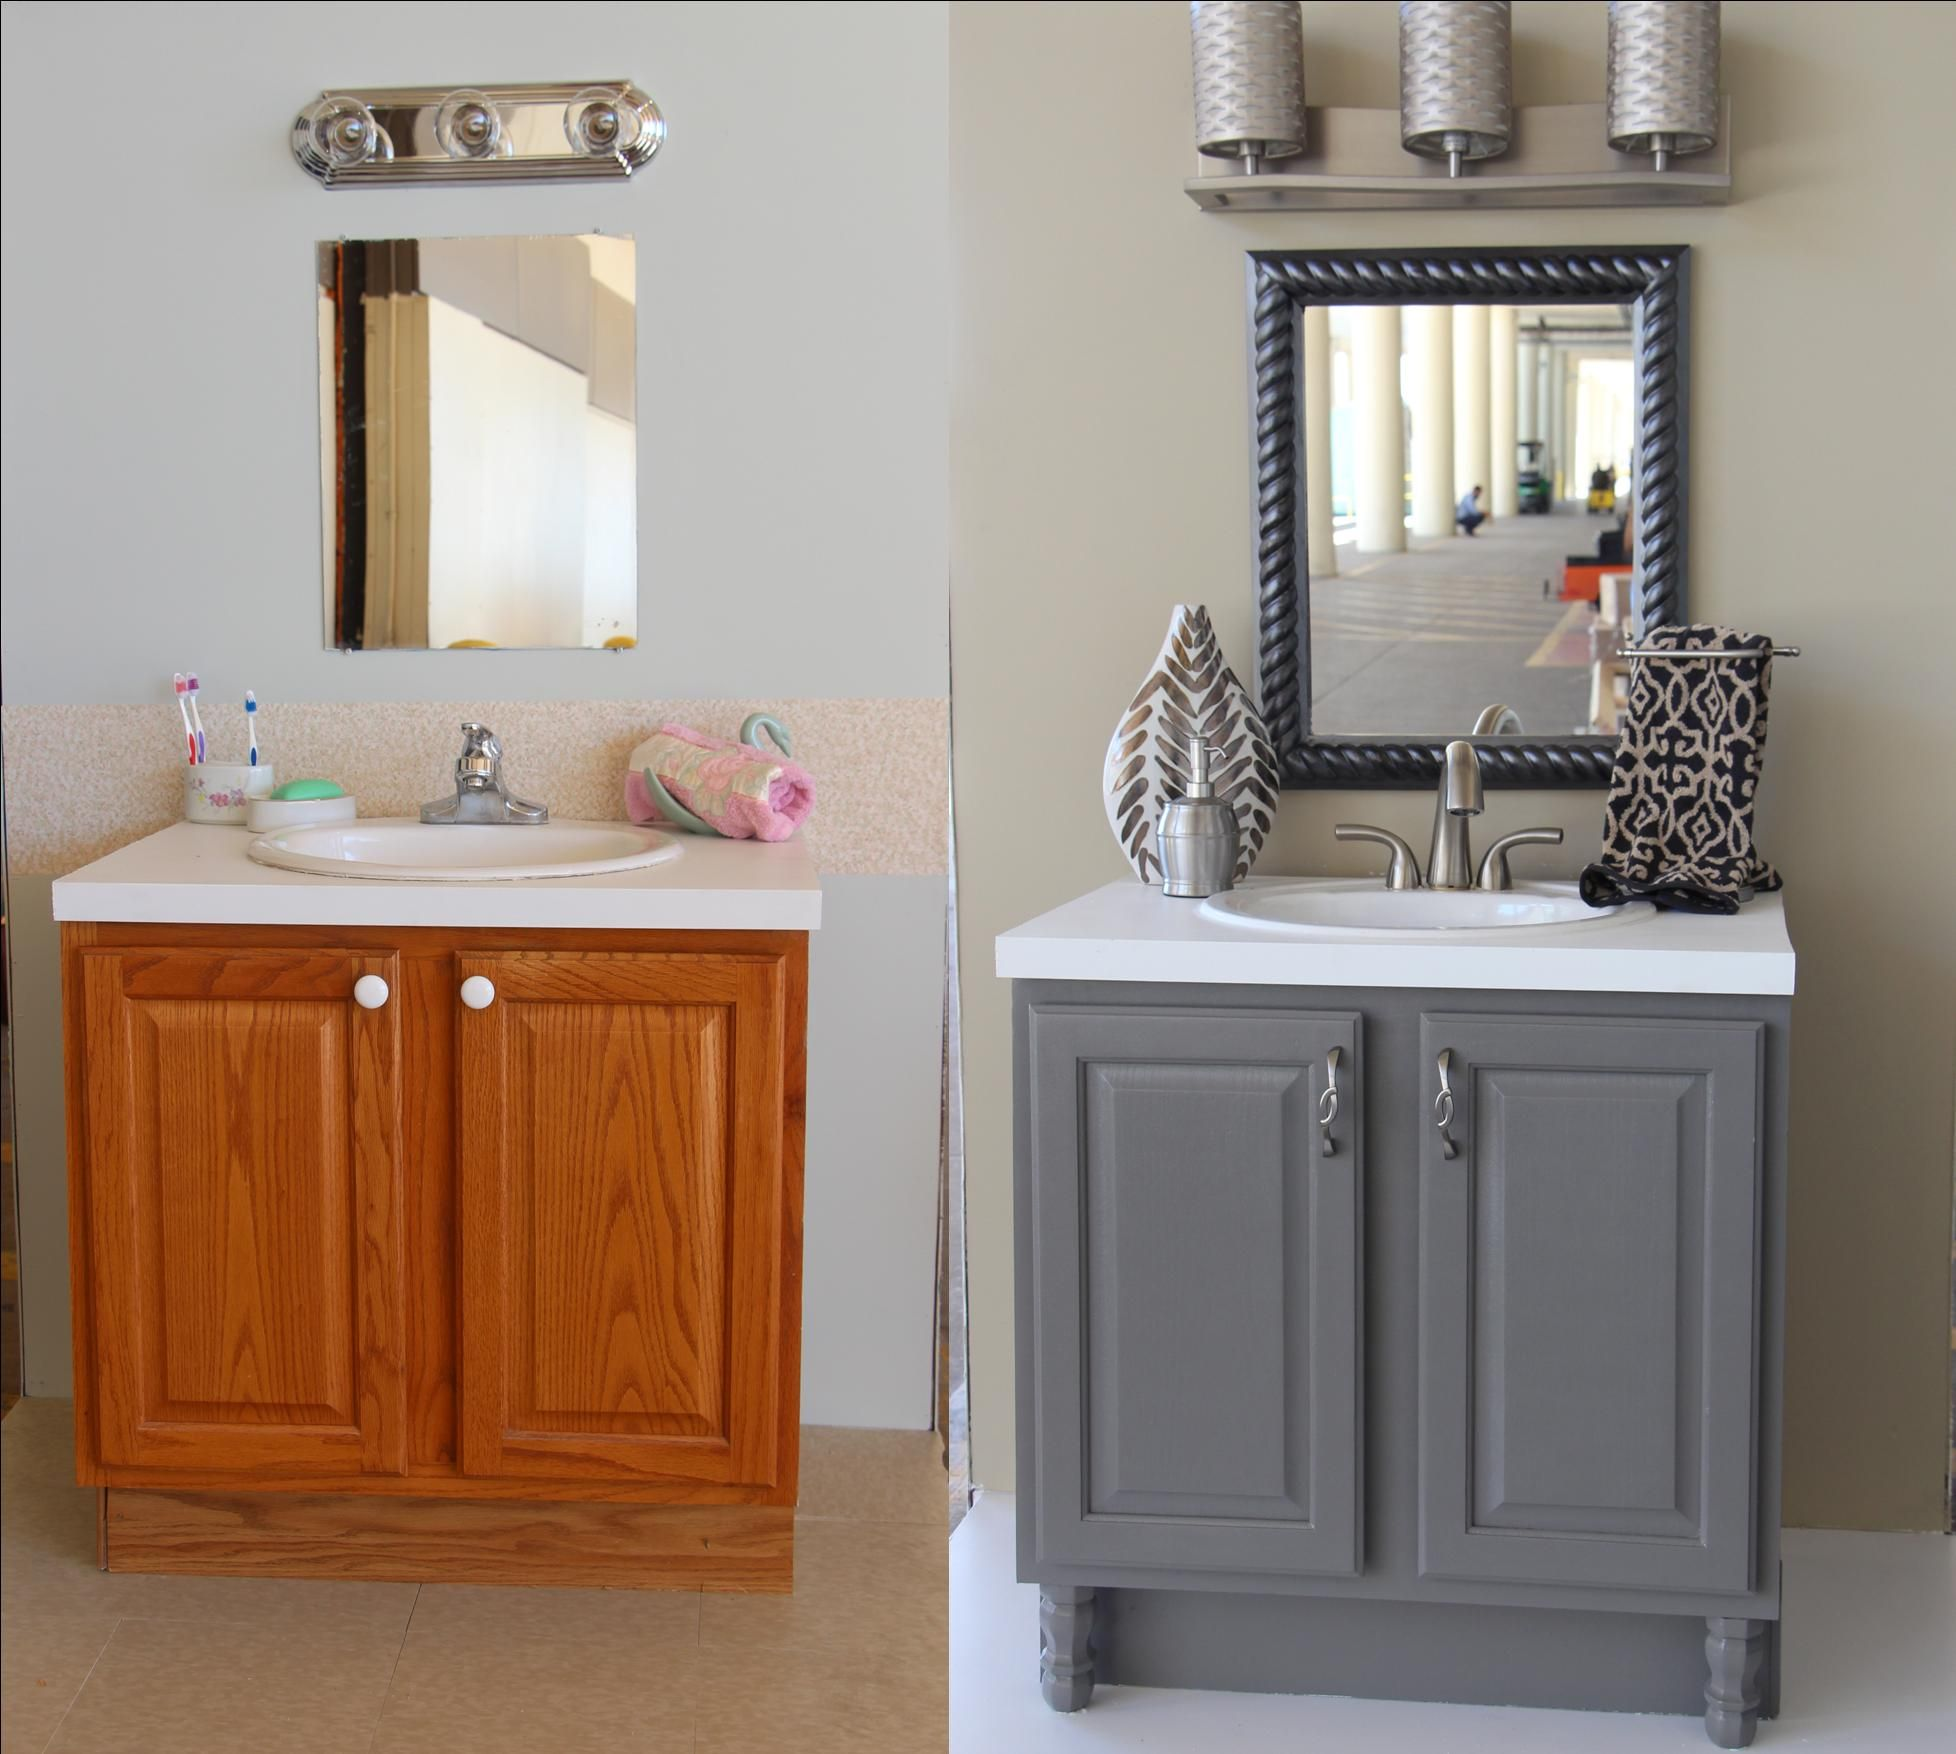 of modern mirrors ideas with sinks trend bathroom image and furniture cabinet double